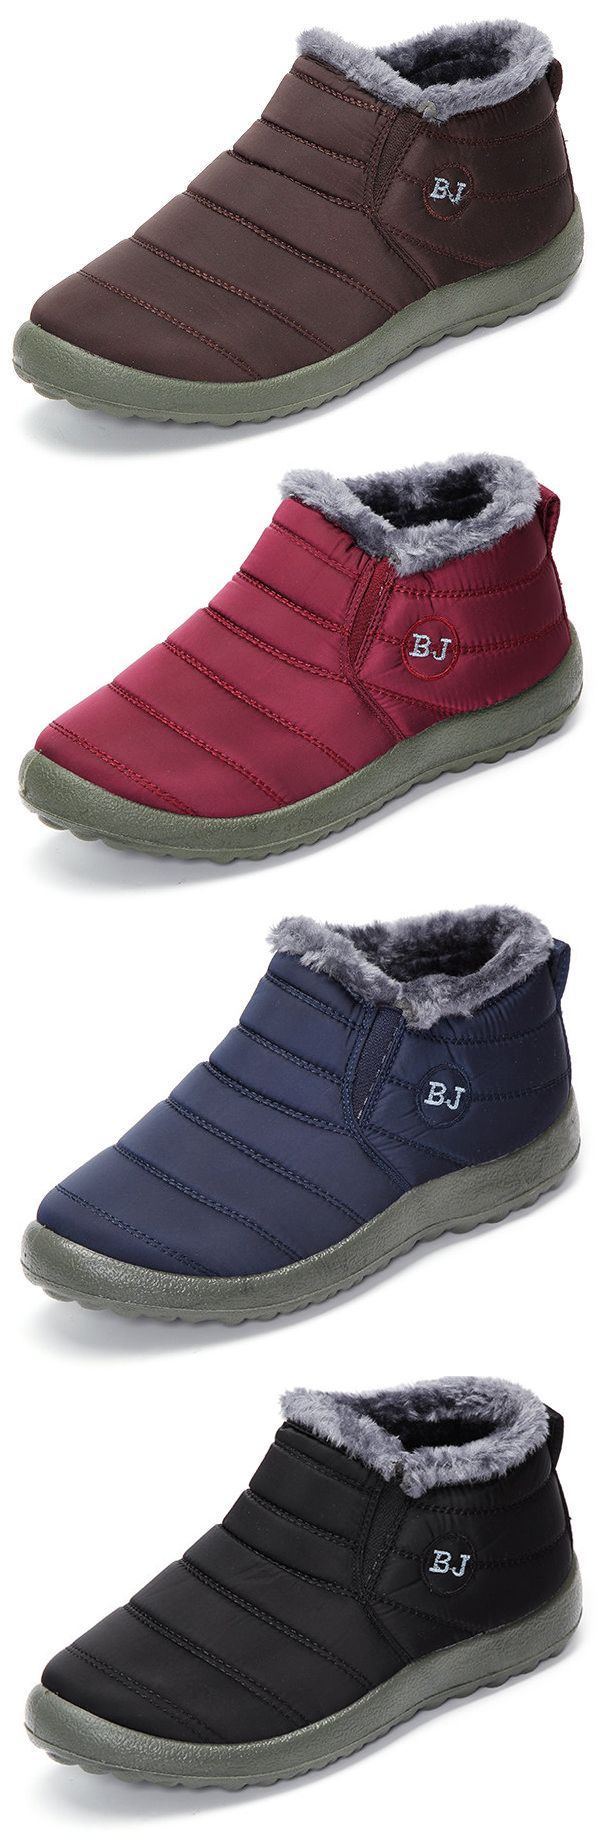 US$15.72#Letter Warm Fur Lining Flat Slip On Ankle Boots For Women